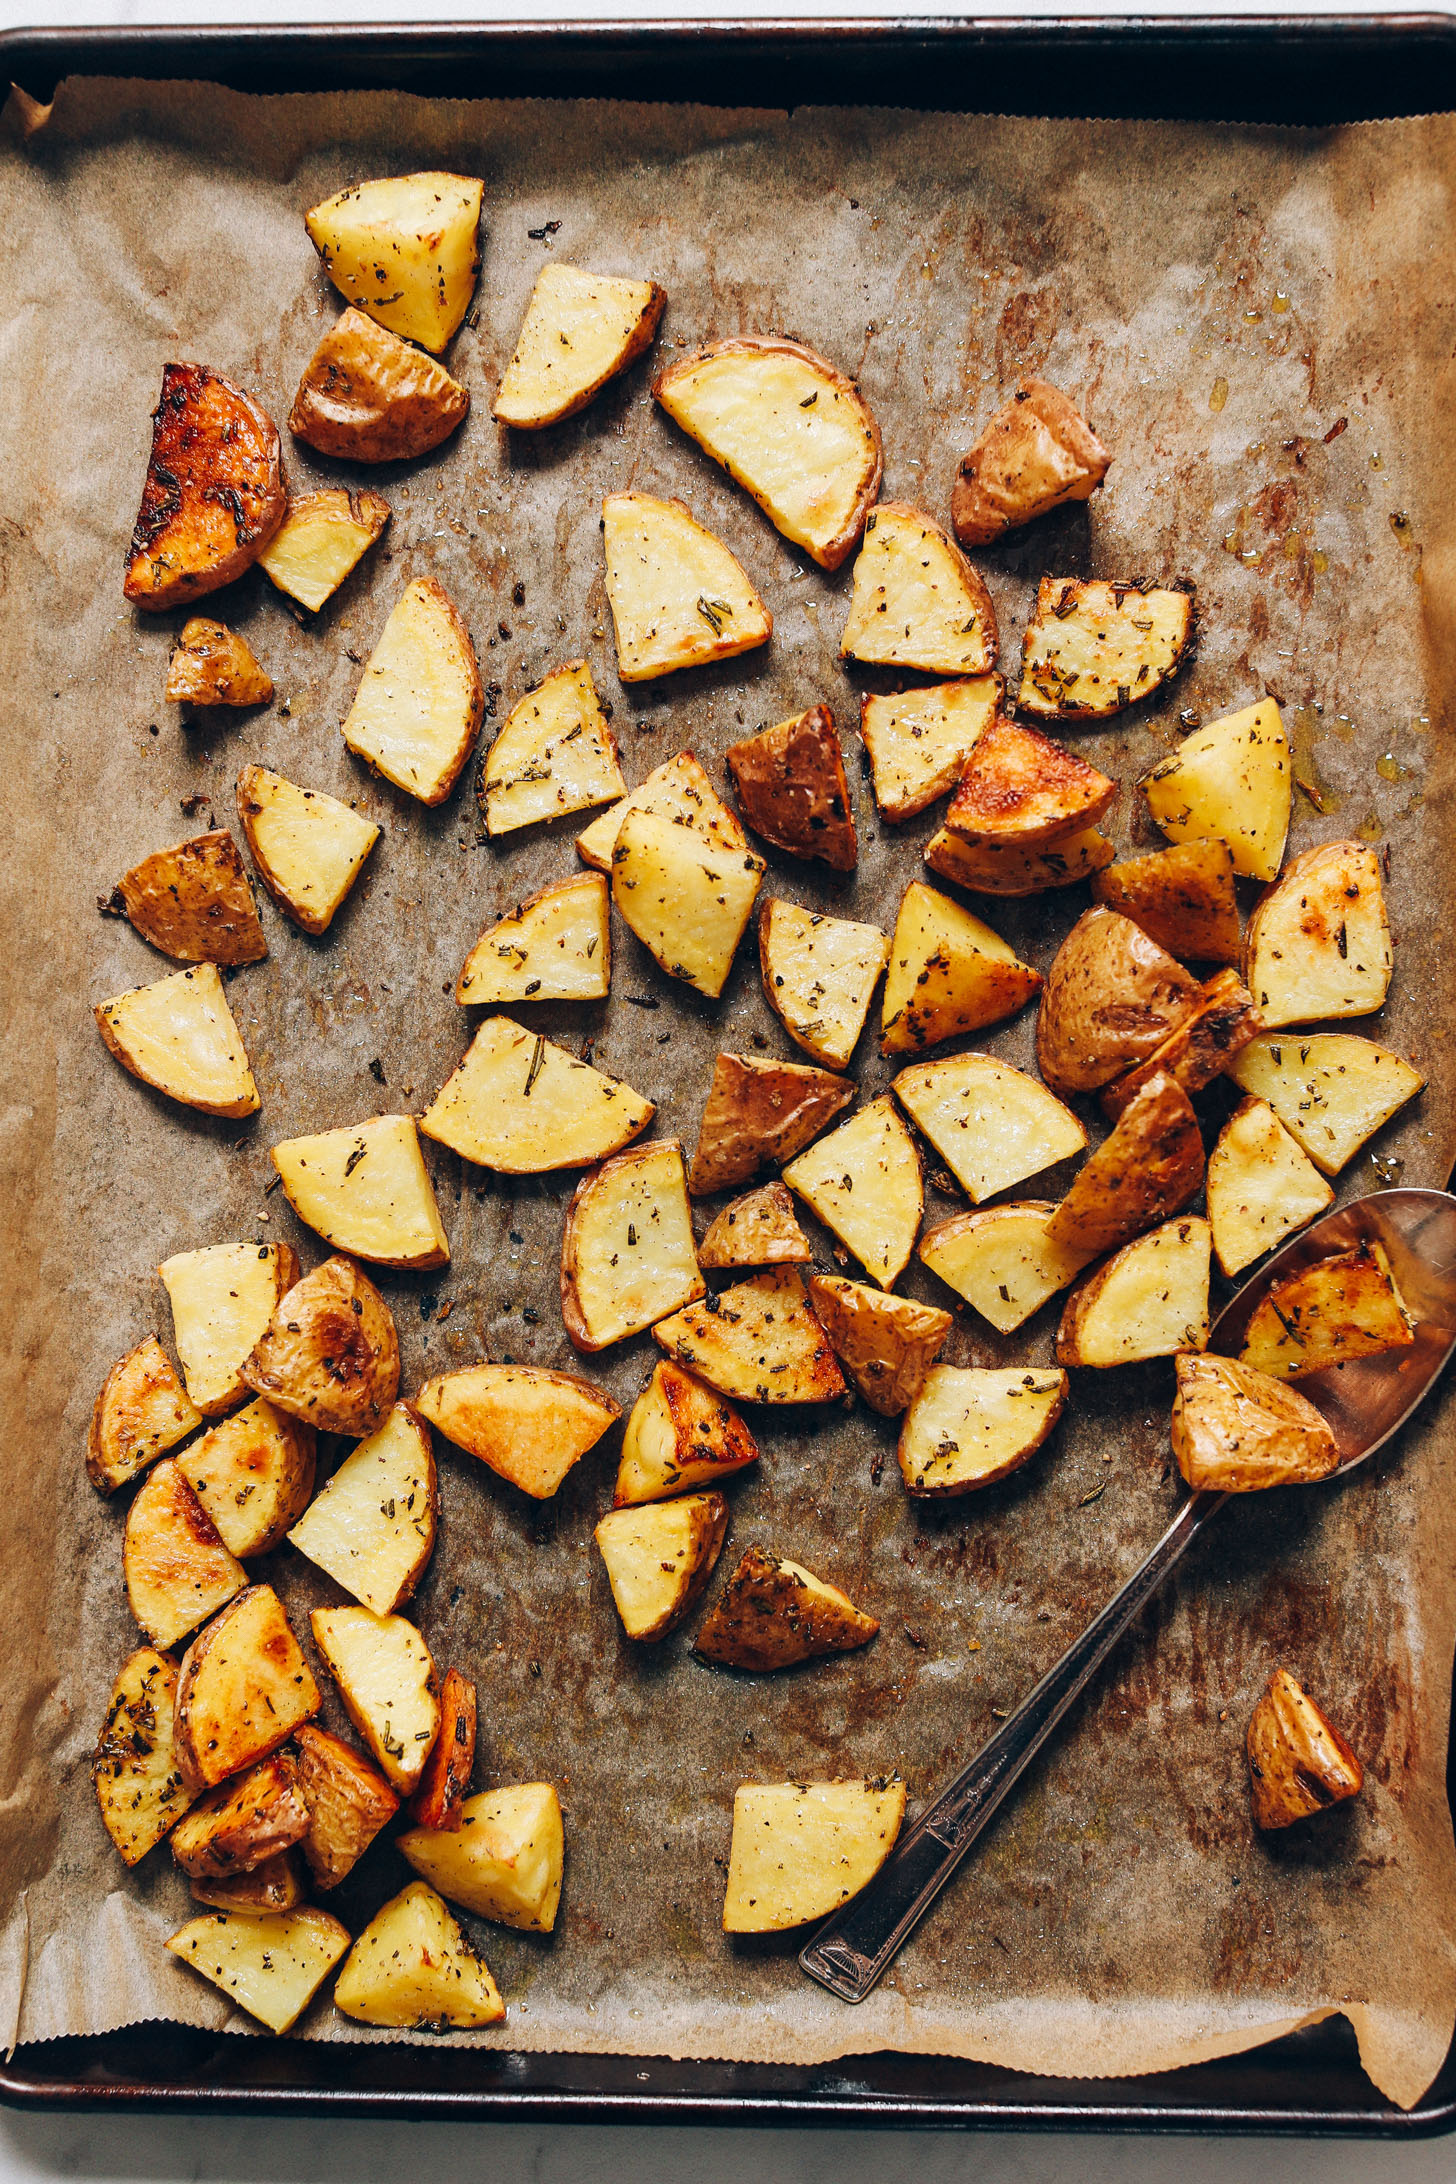 Parchment-lined baking sheet filled with Crispy Oven Roasted Potatoes